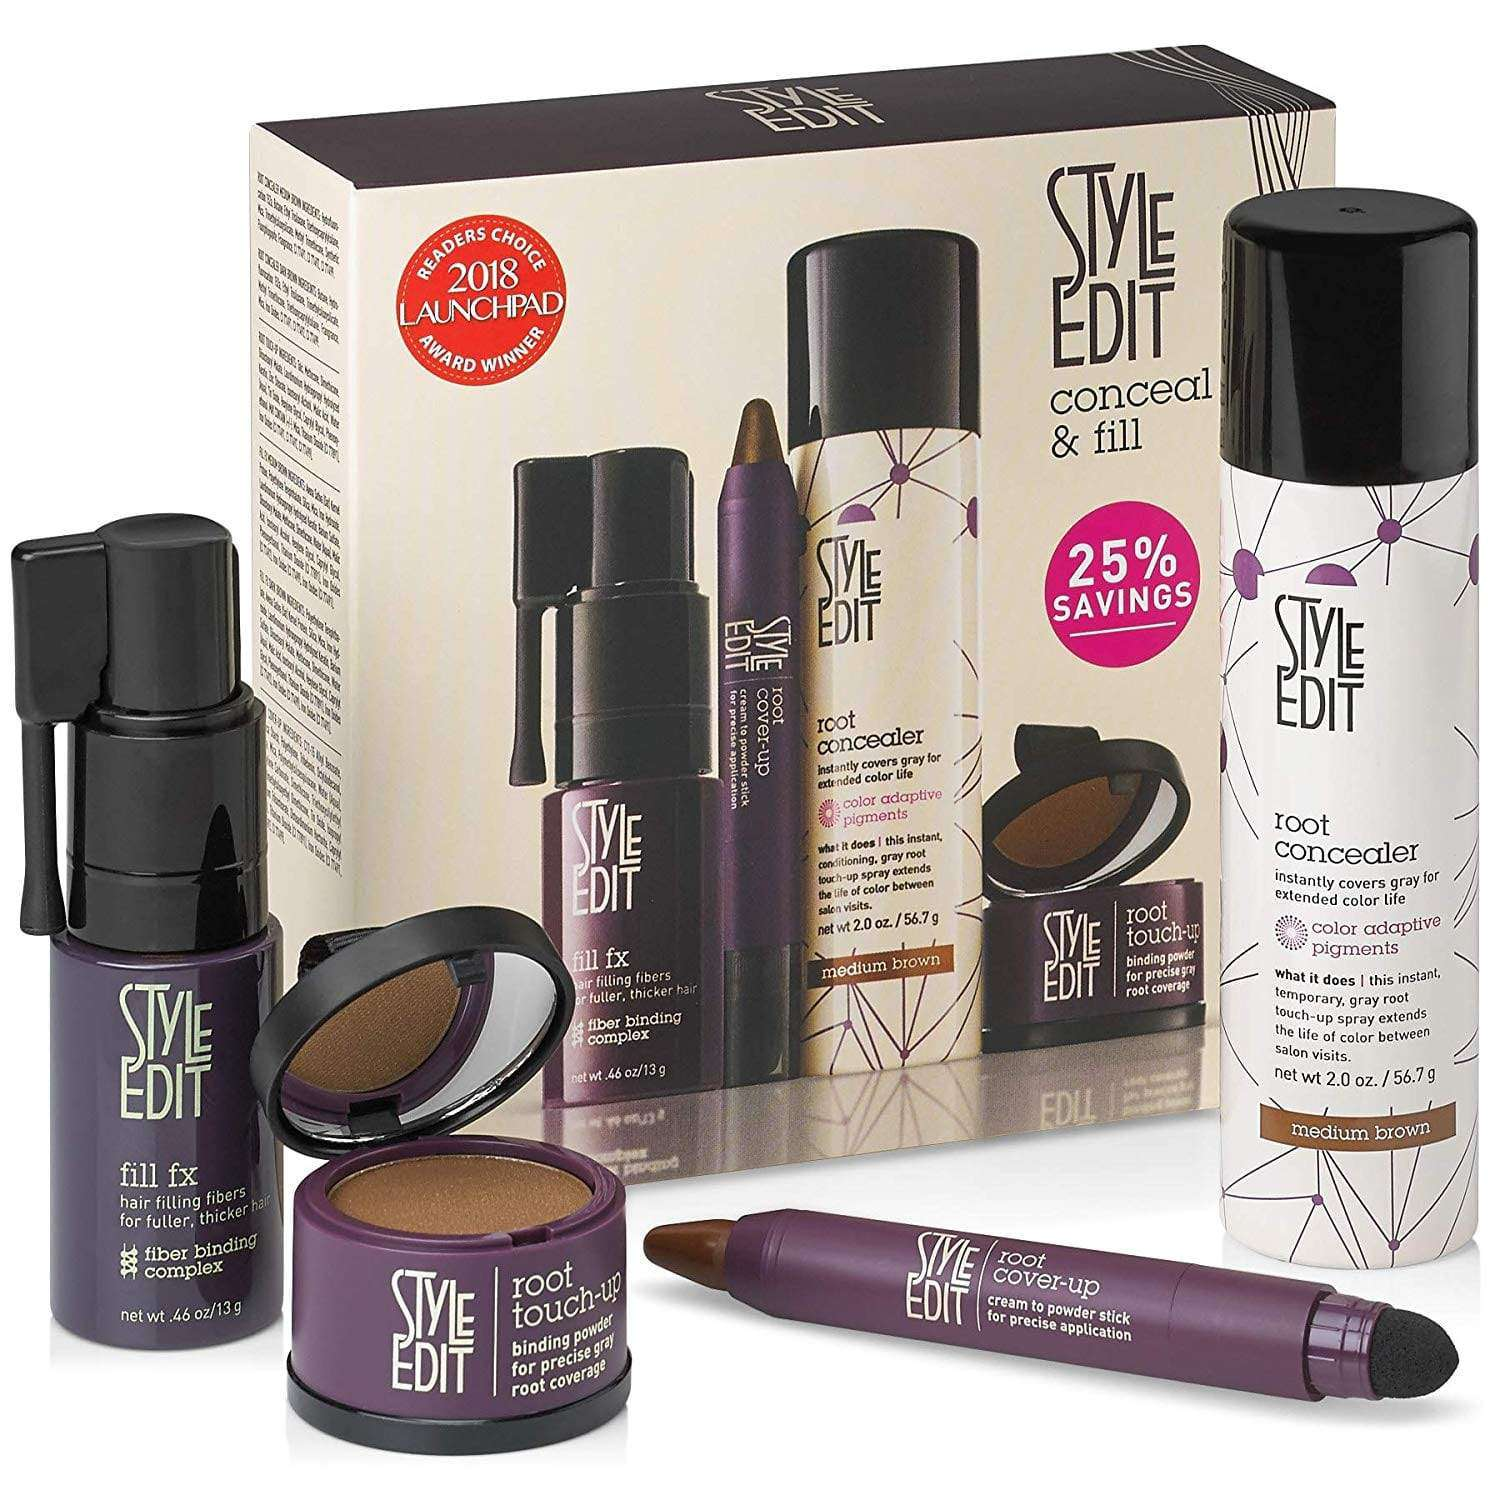 Style Edit Root Touch Up Collection Gift Set - Style Edit data-zoom=